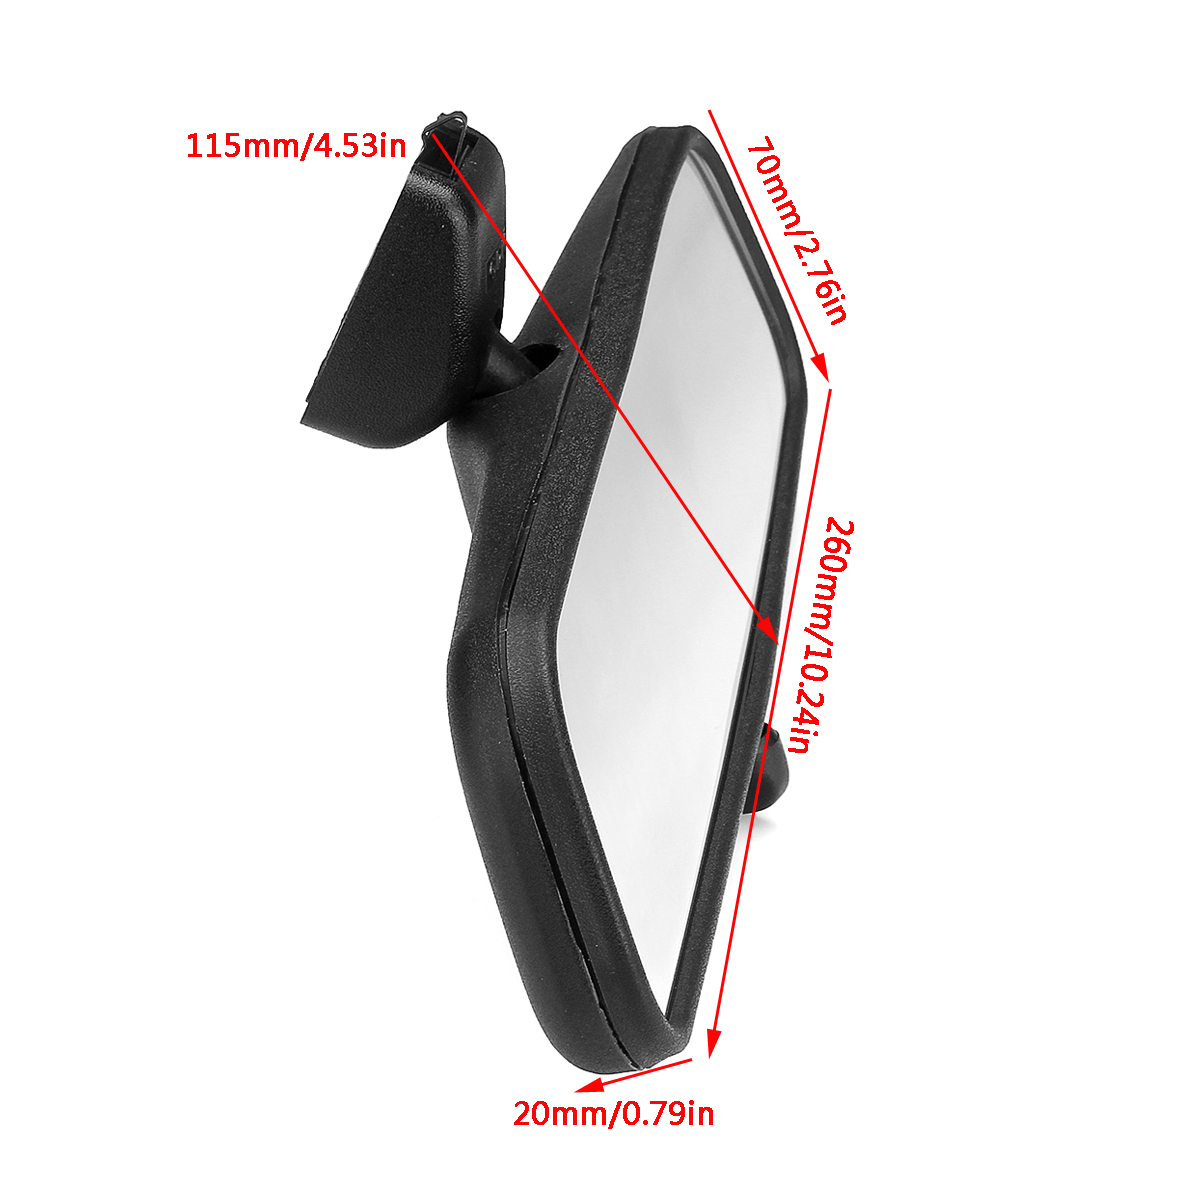 Car Truck Wide Flat Interior View Mirrors Rearview for Original GM Opel Astra AU